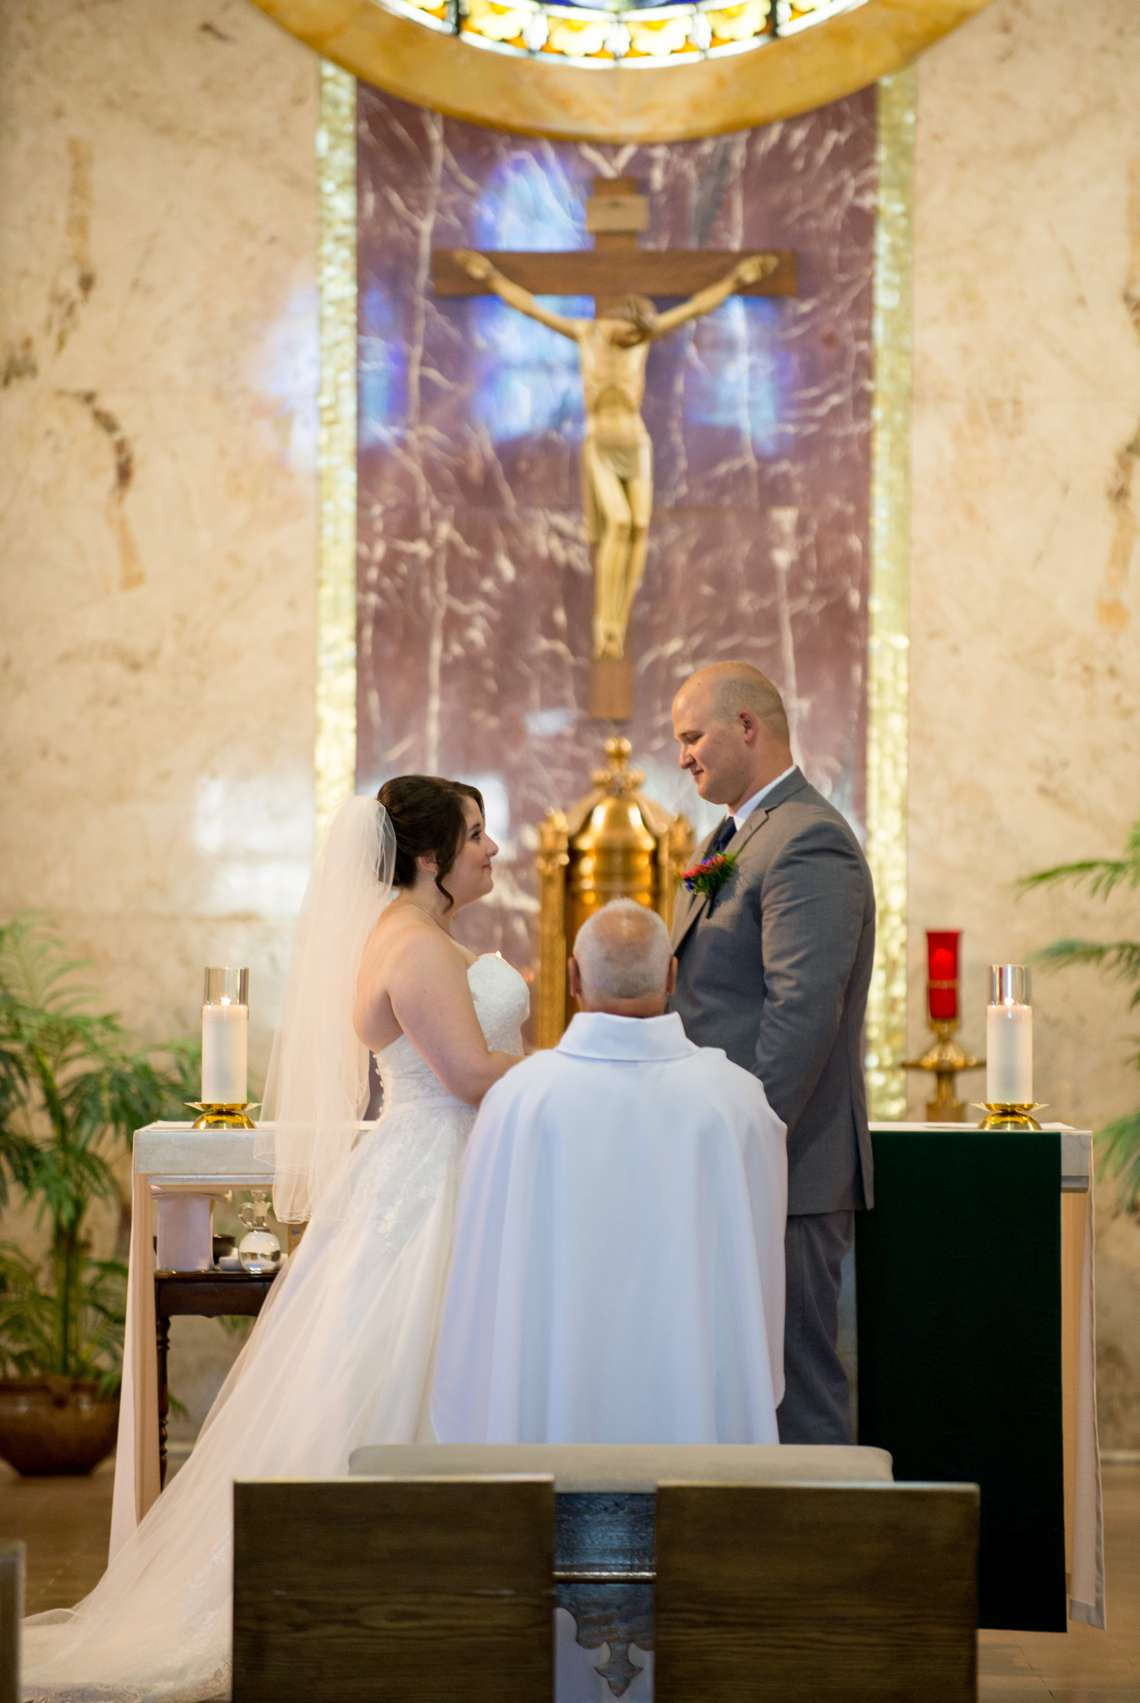 wedding photos in church